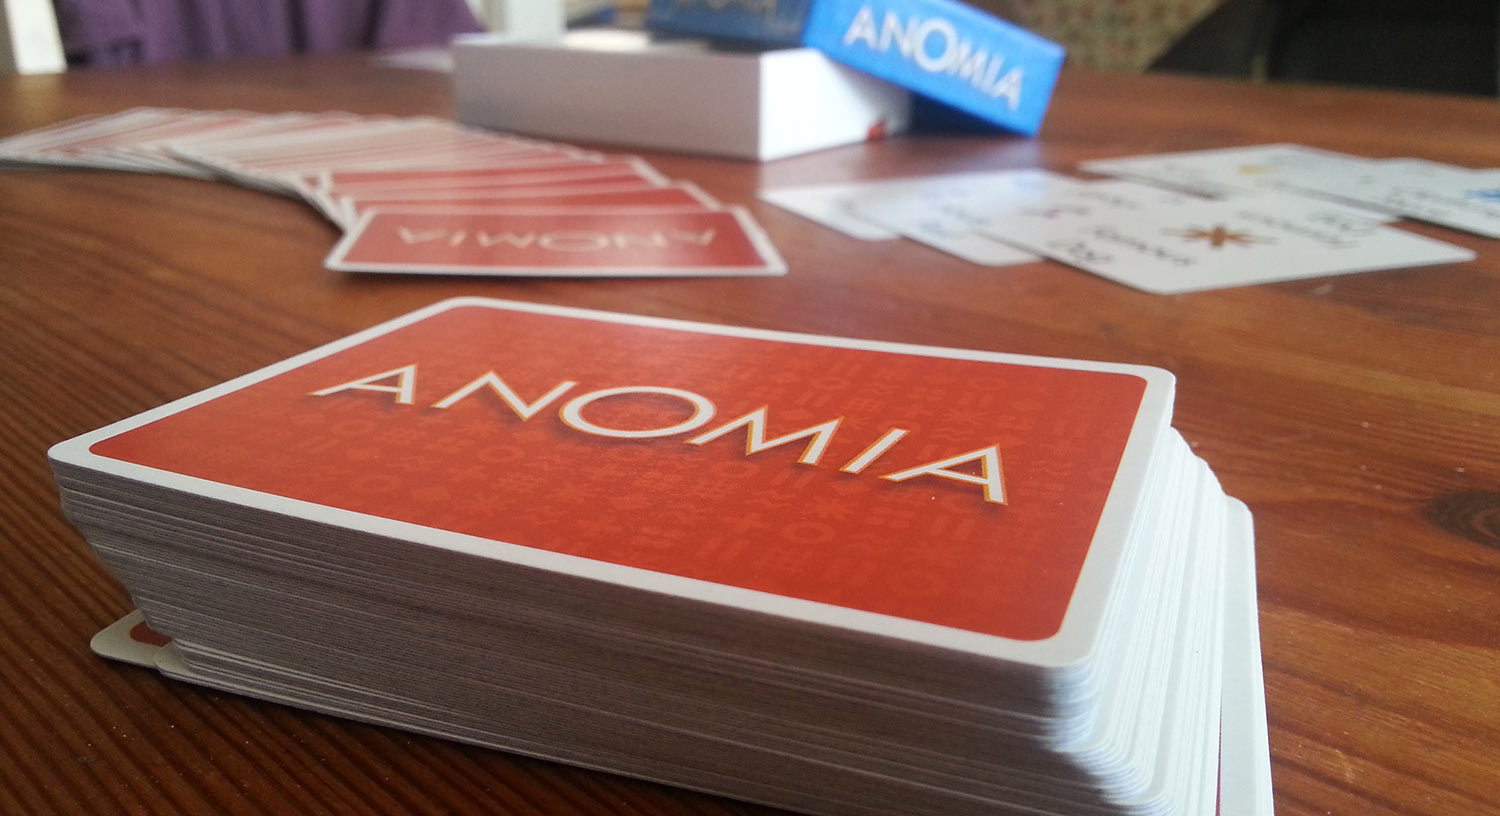 Review: Anomia